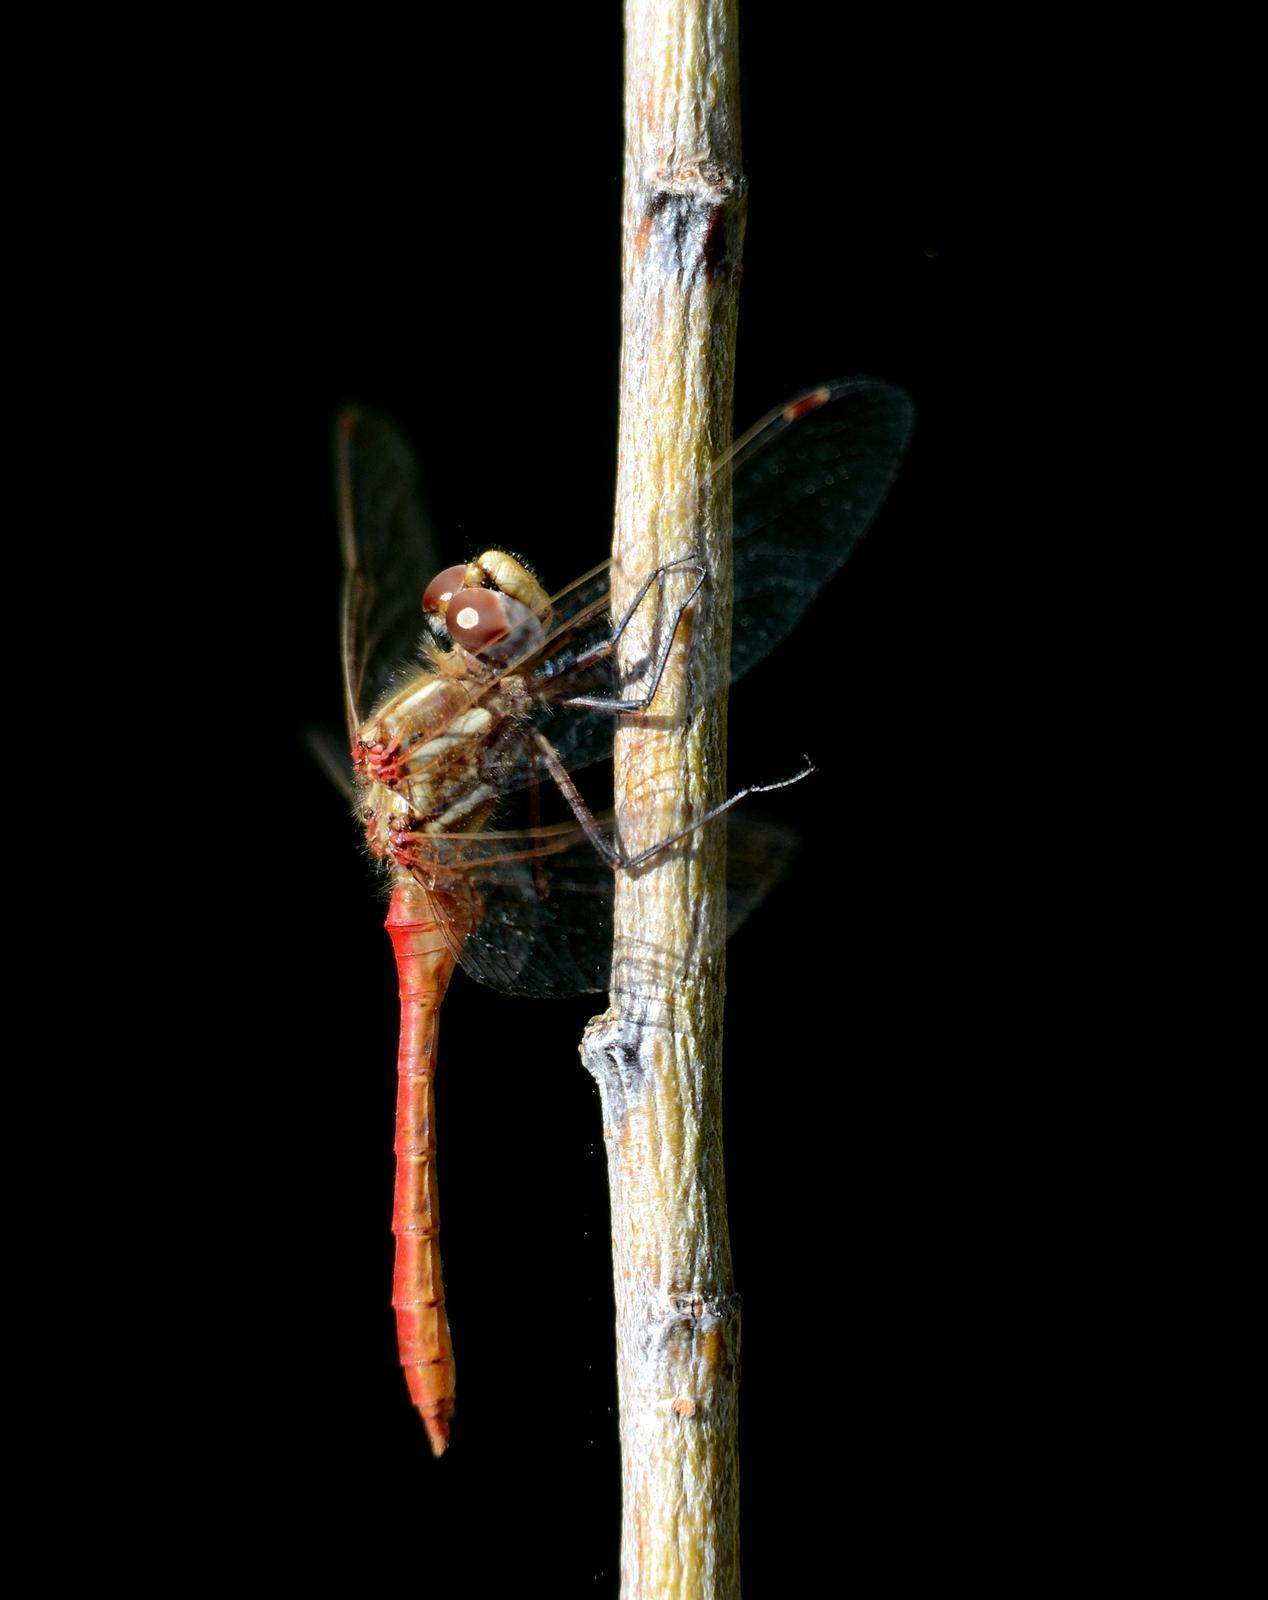 Striped Meadowhawk Photo by Steven Mlodinow